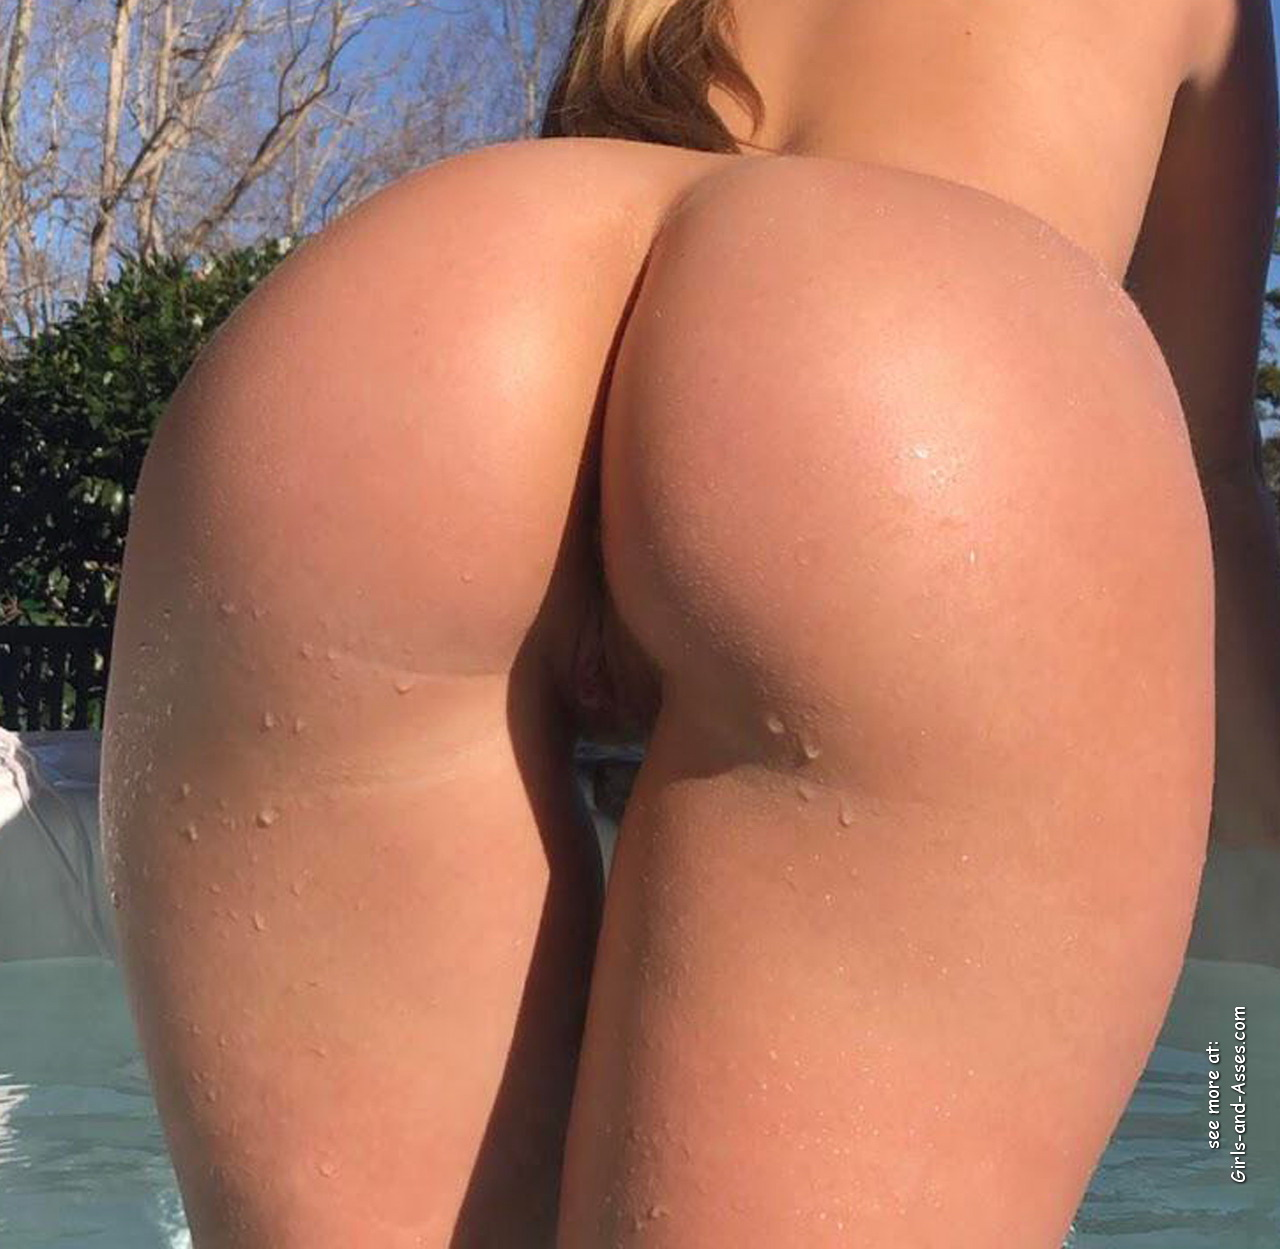 beautiful naked ass by the pool photo 00328